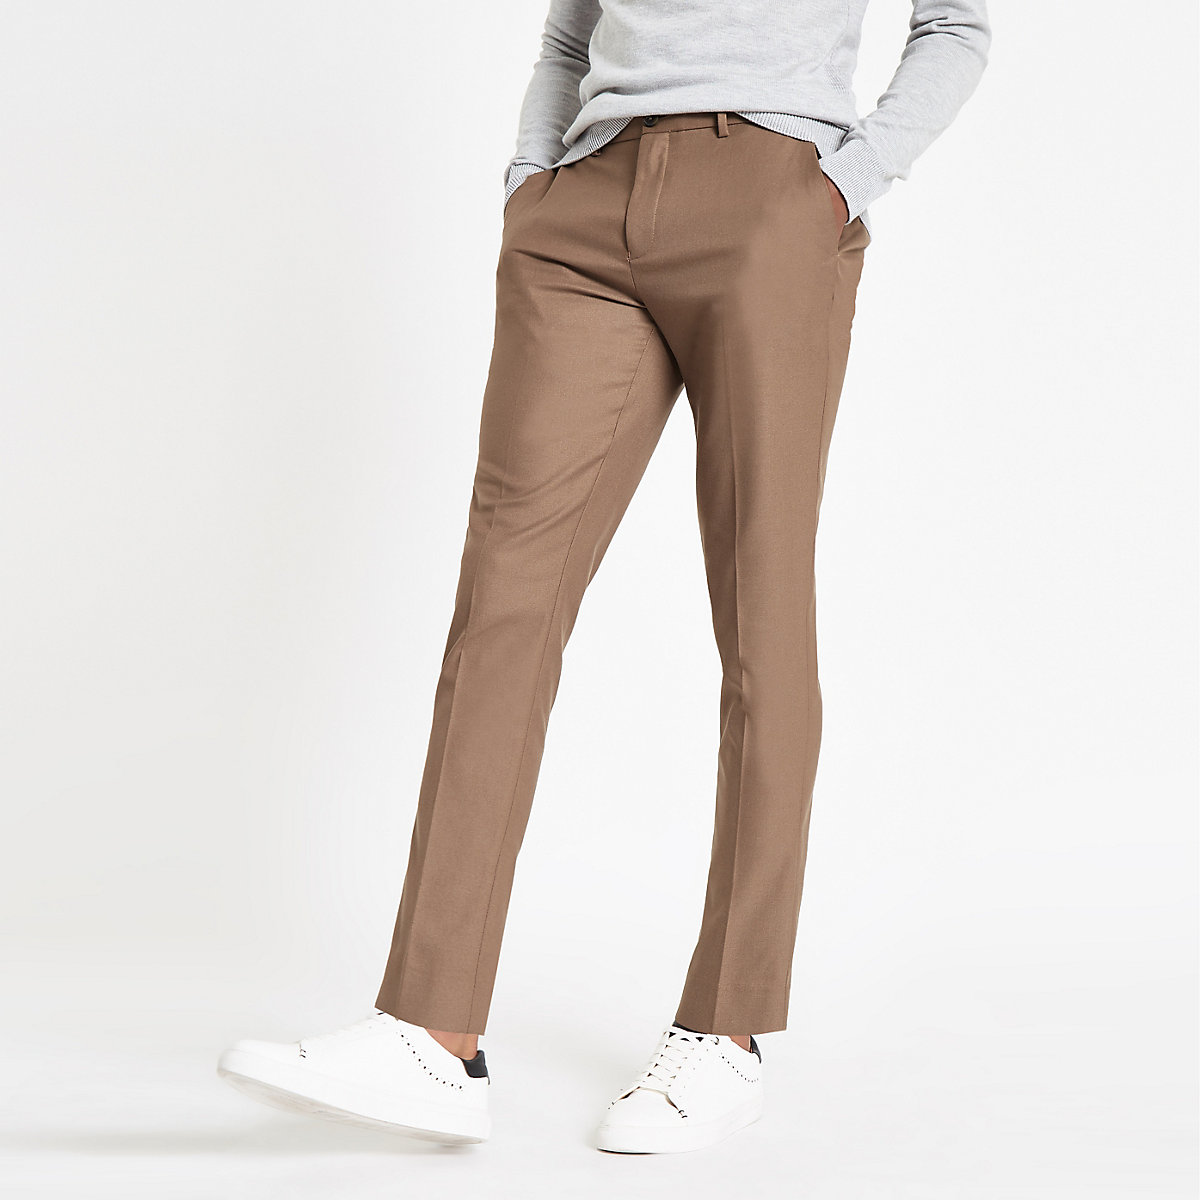 Camel skinny fit smart pants